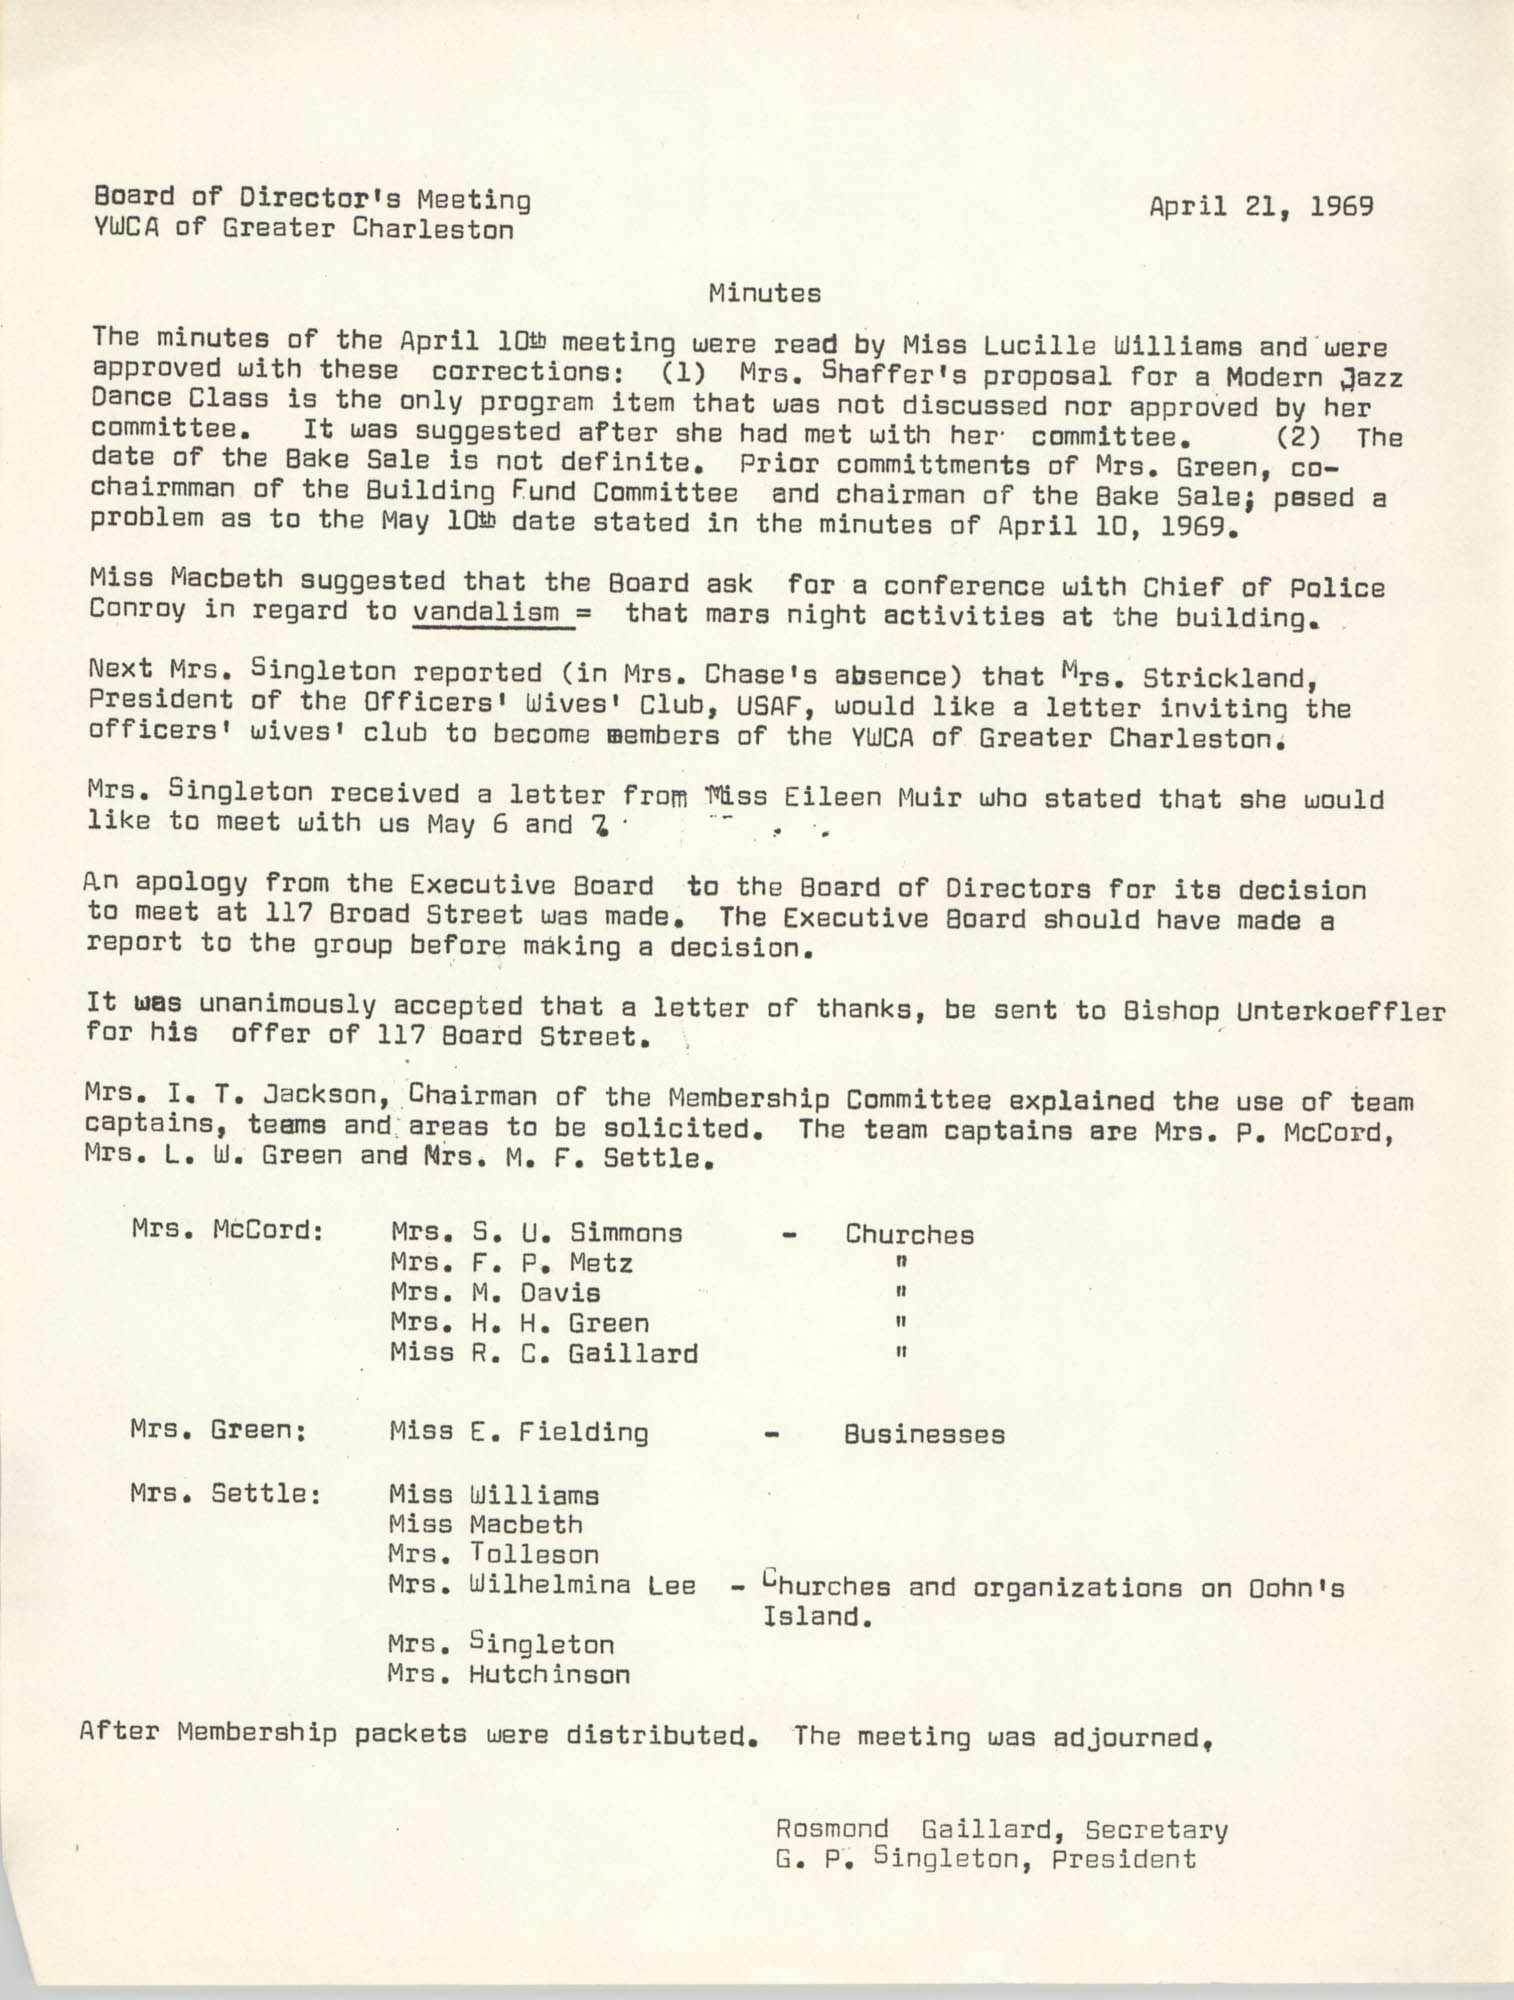 Minutes to the Board of Directors Meeting, Y.W.C.A. of Greater Charleston, April 21, 1969